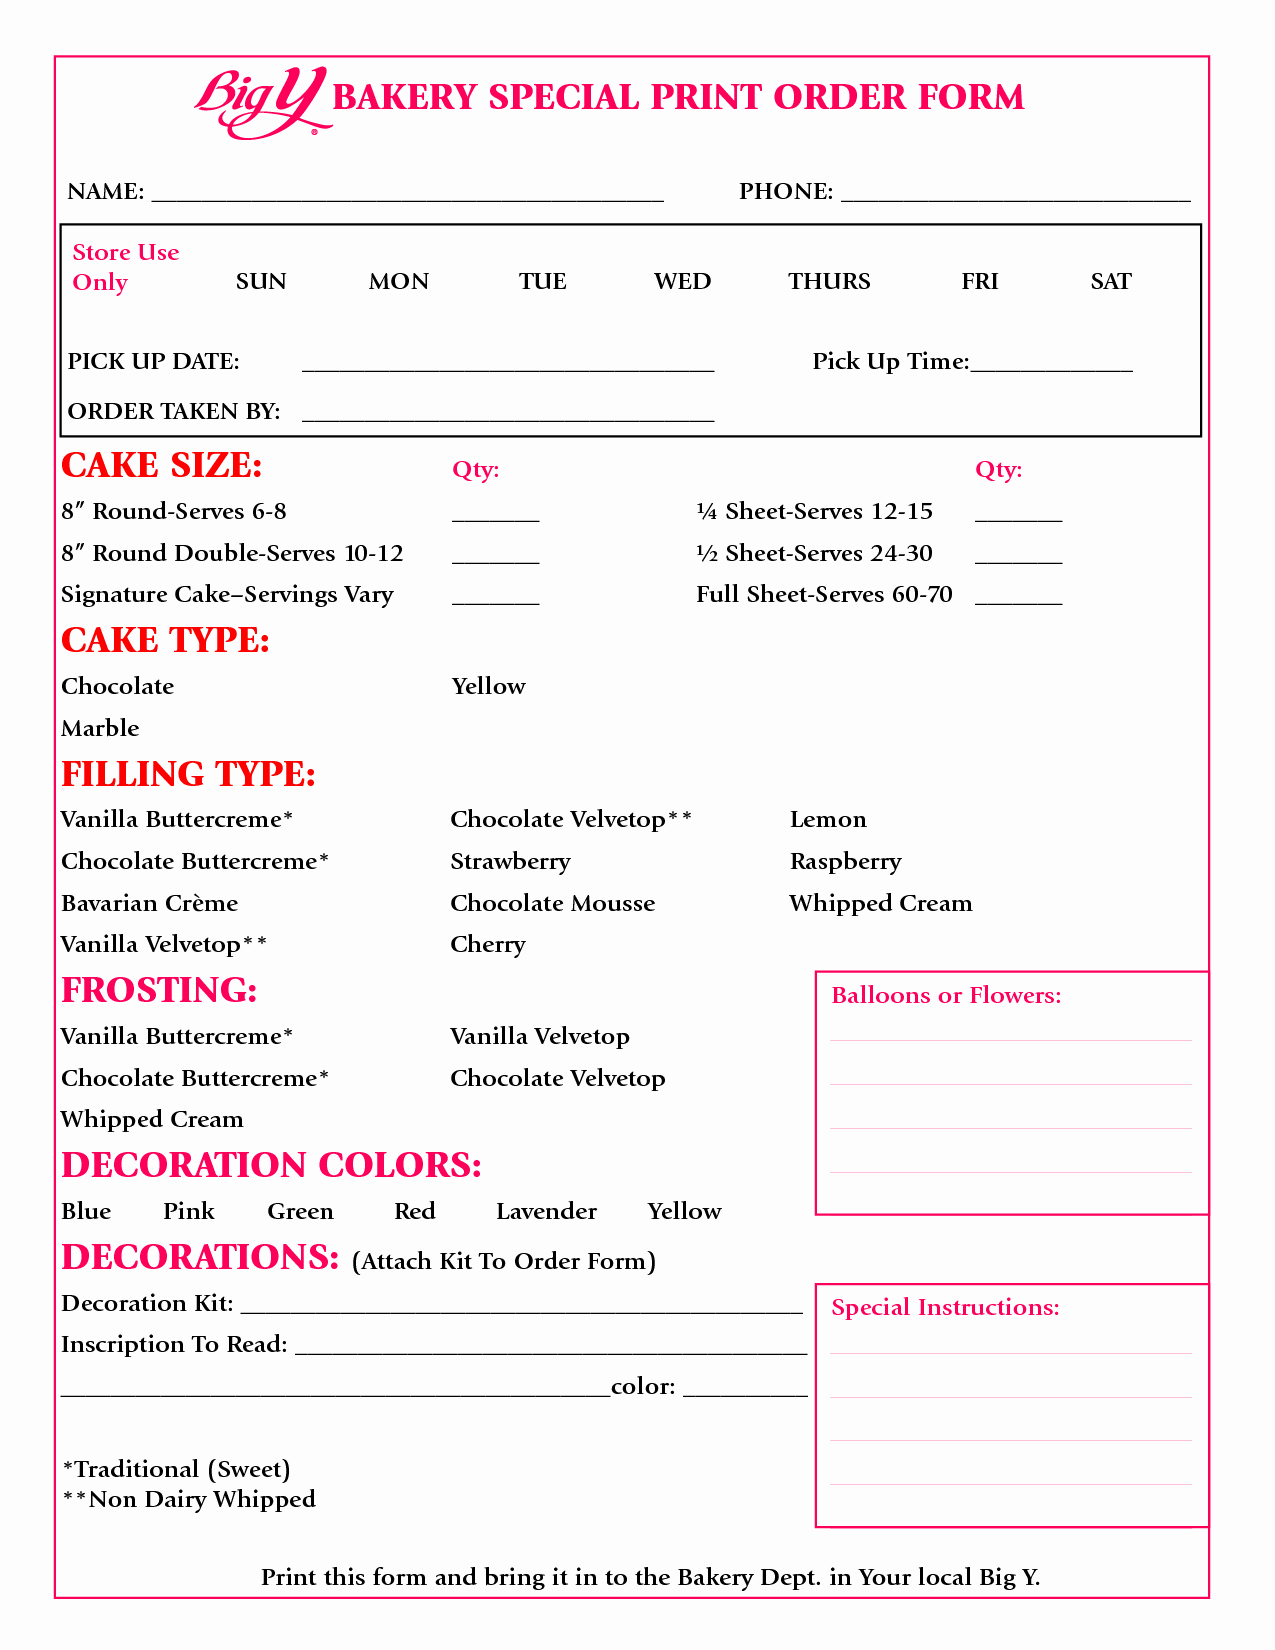 Cake order forms Templates Lovely Cake order form Google Search